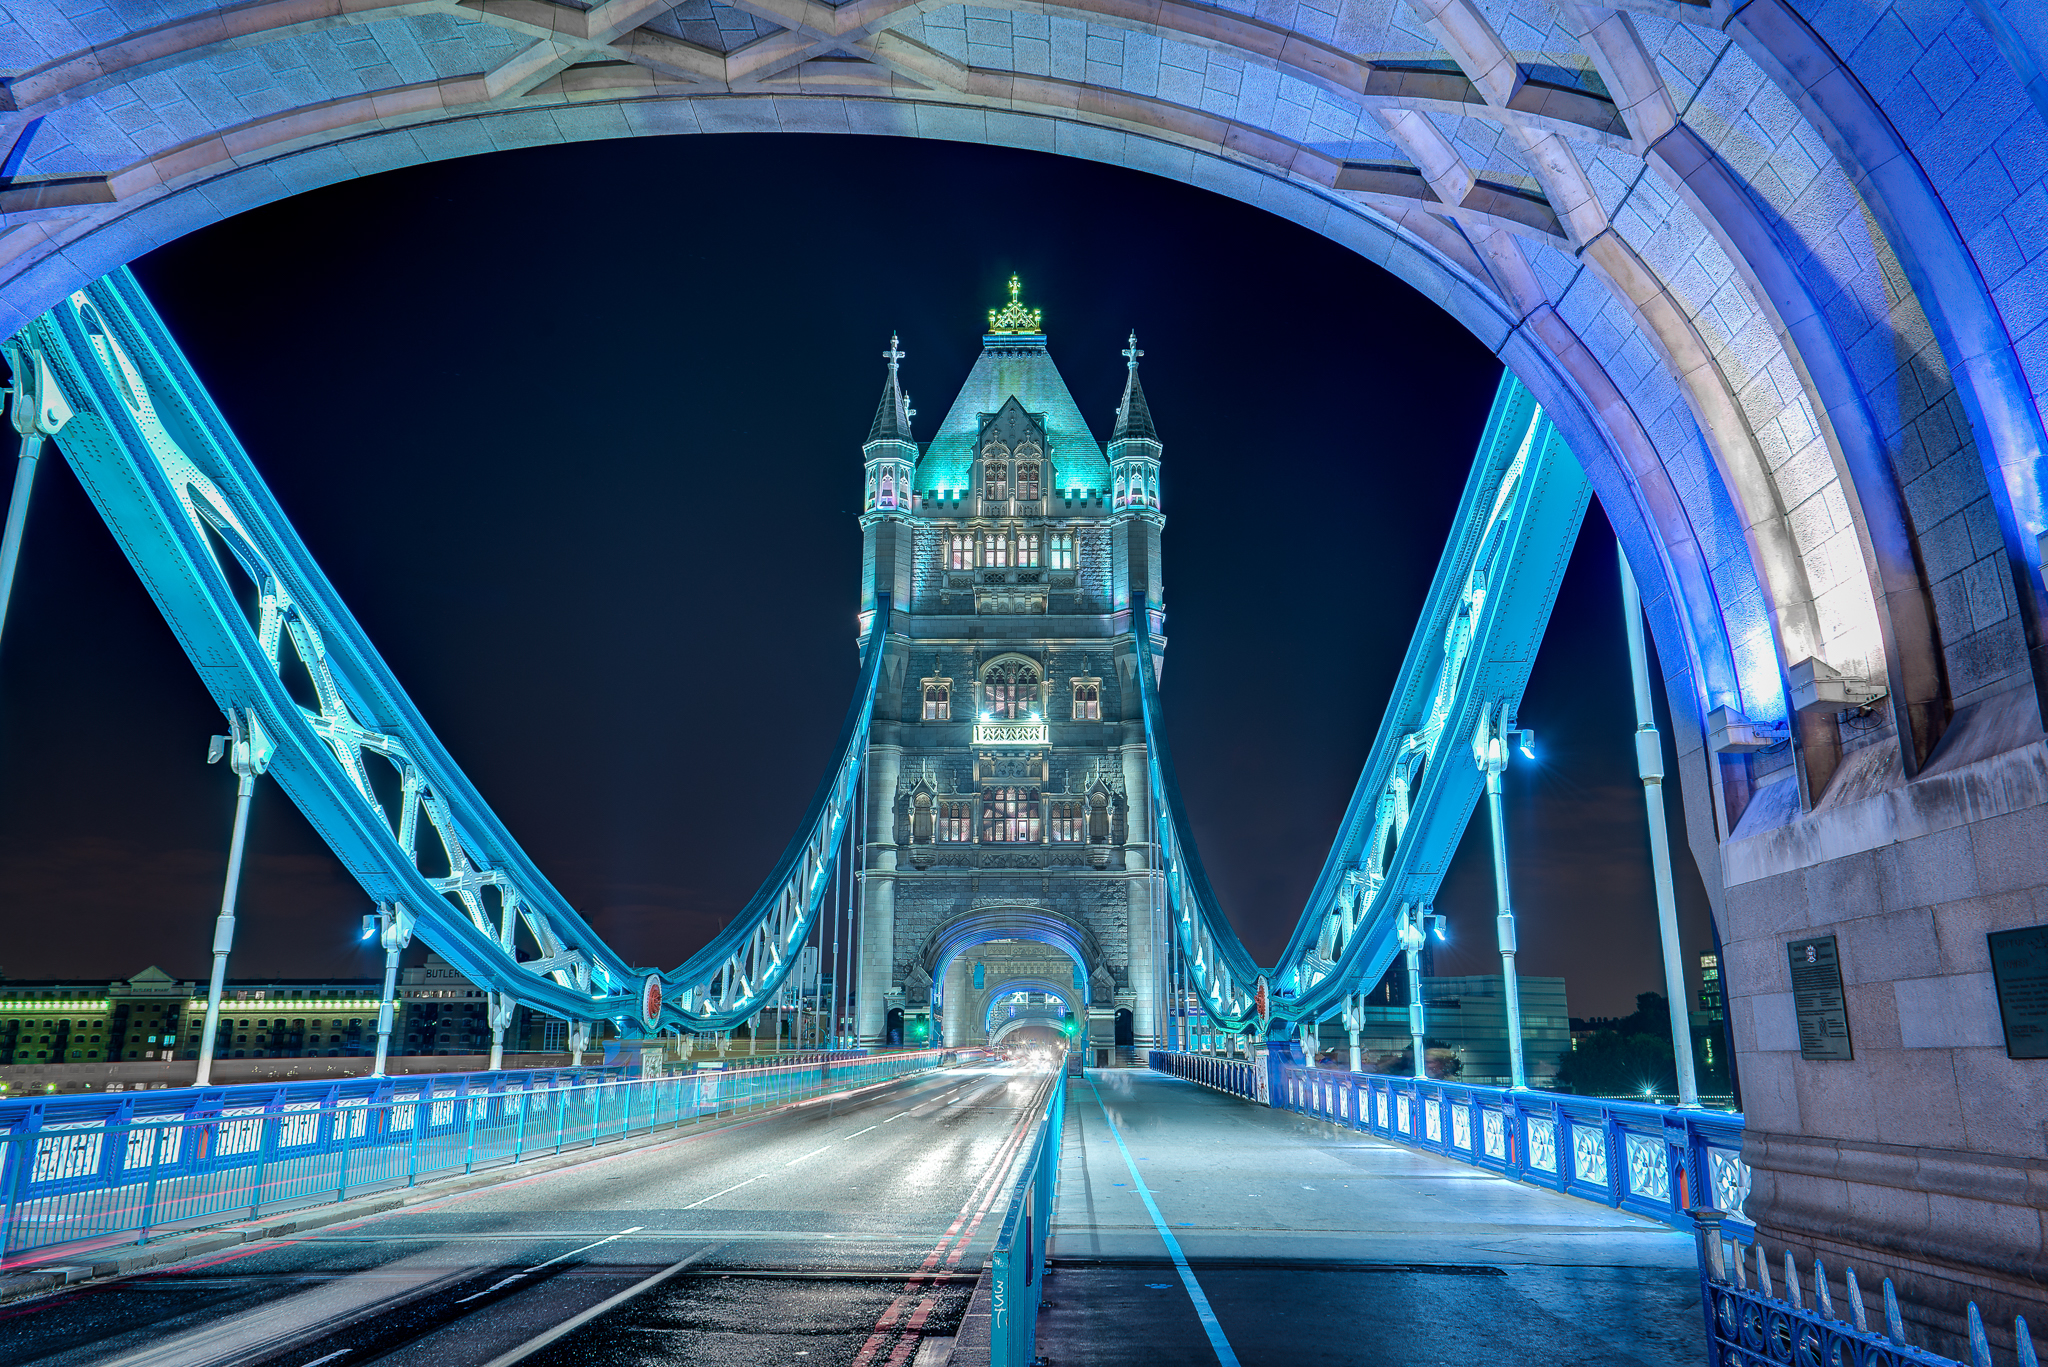 On the Tower Bridge, United Kingdom